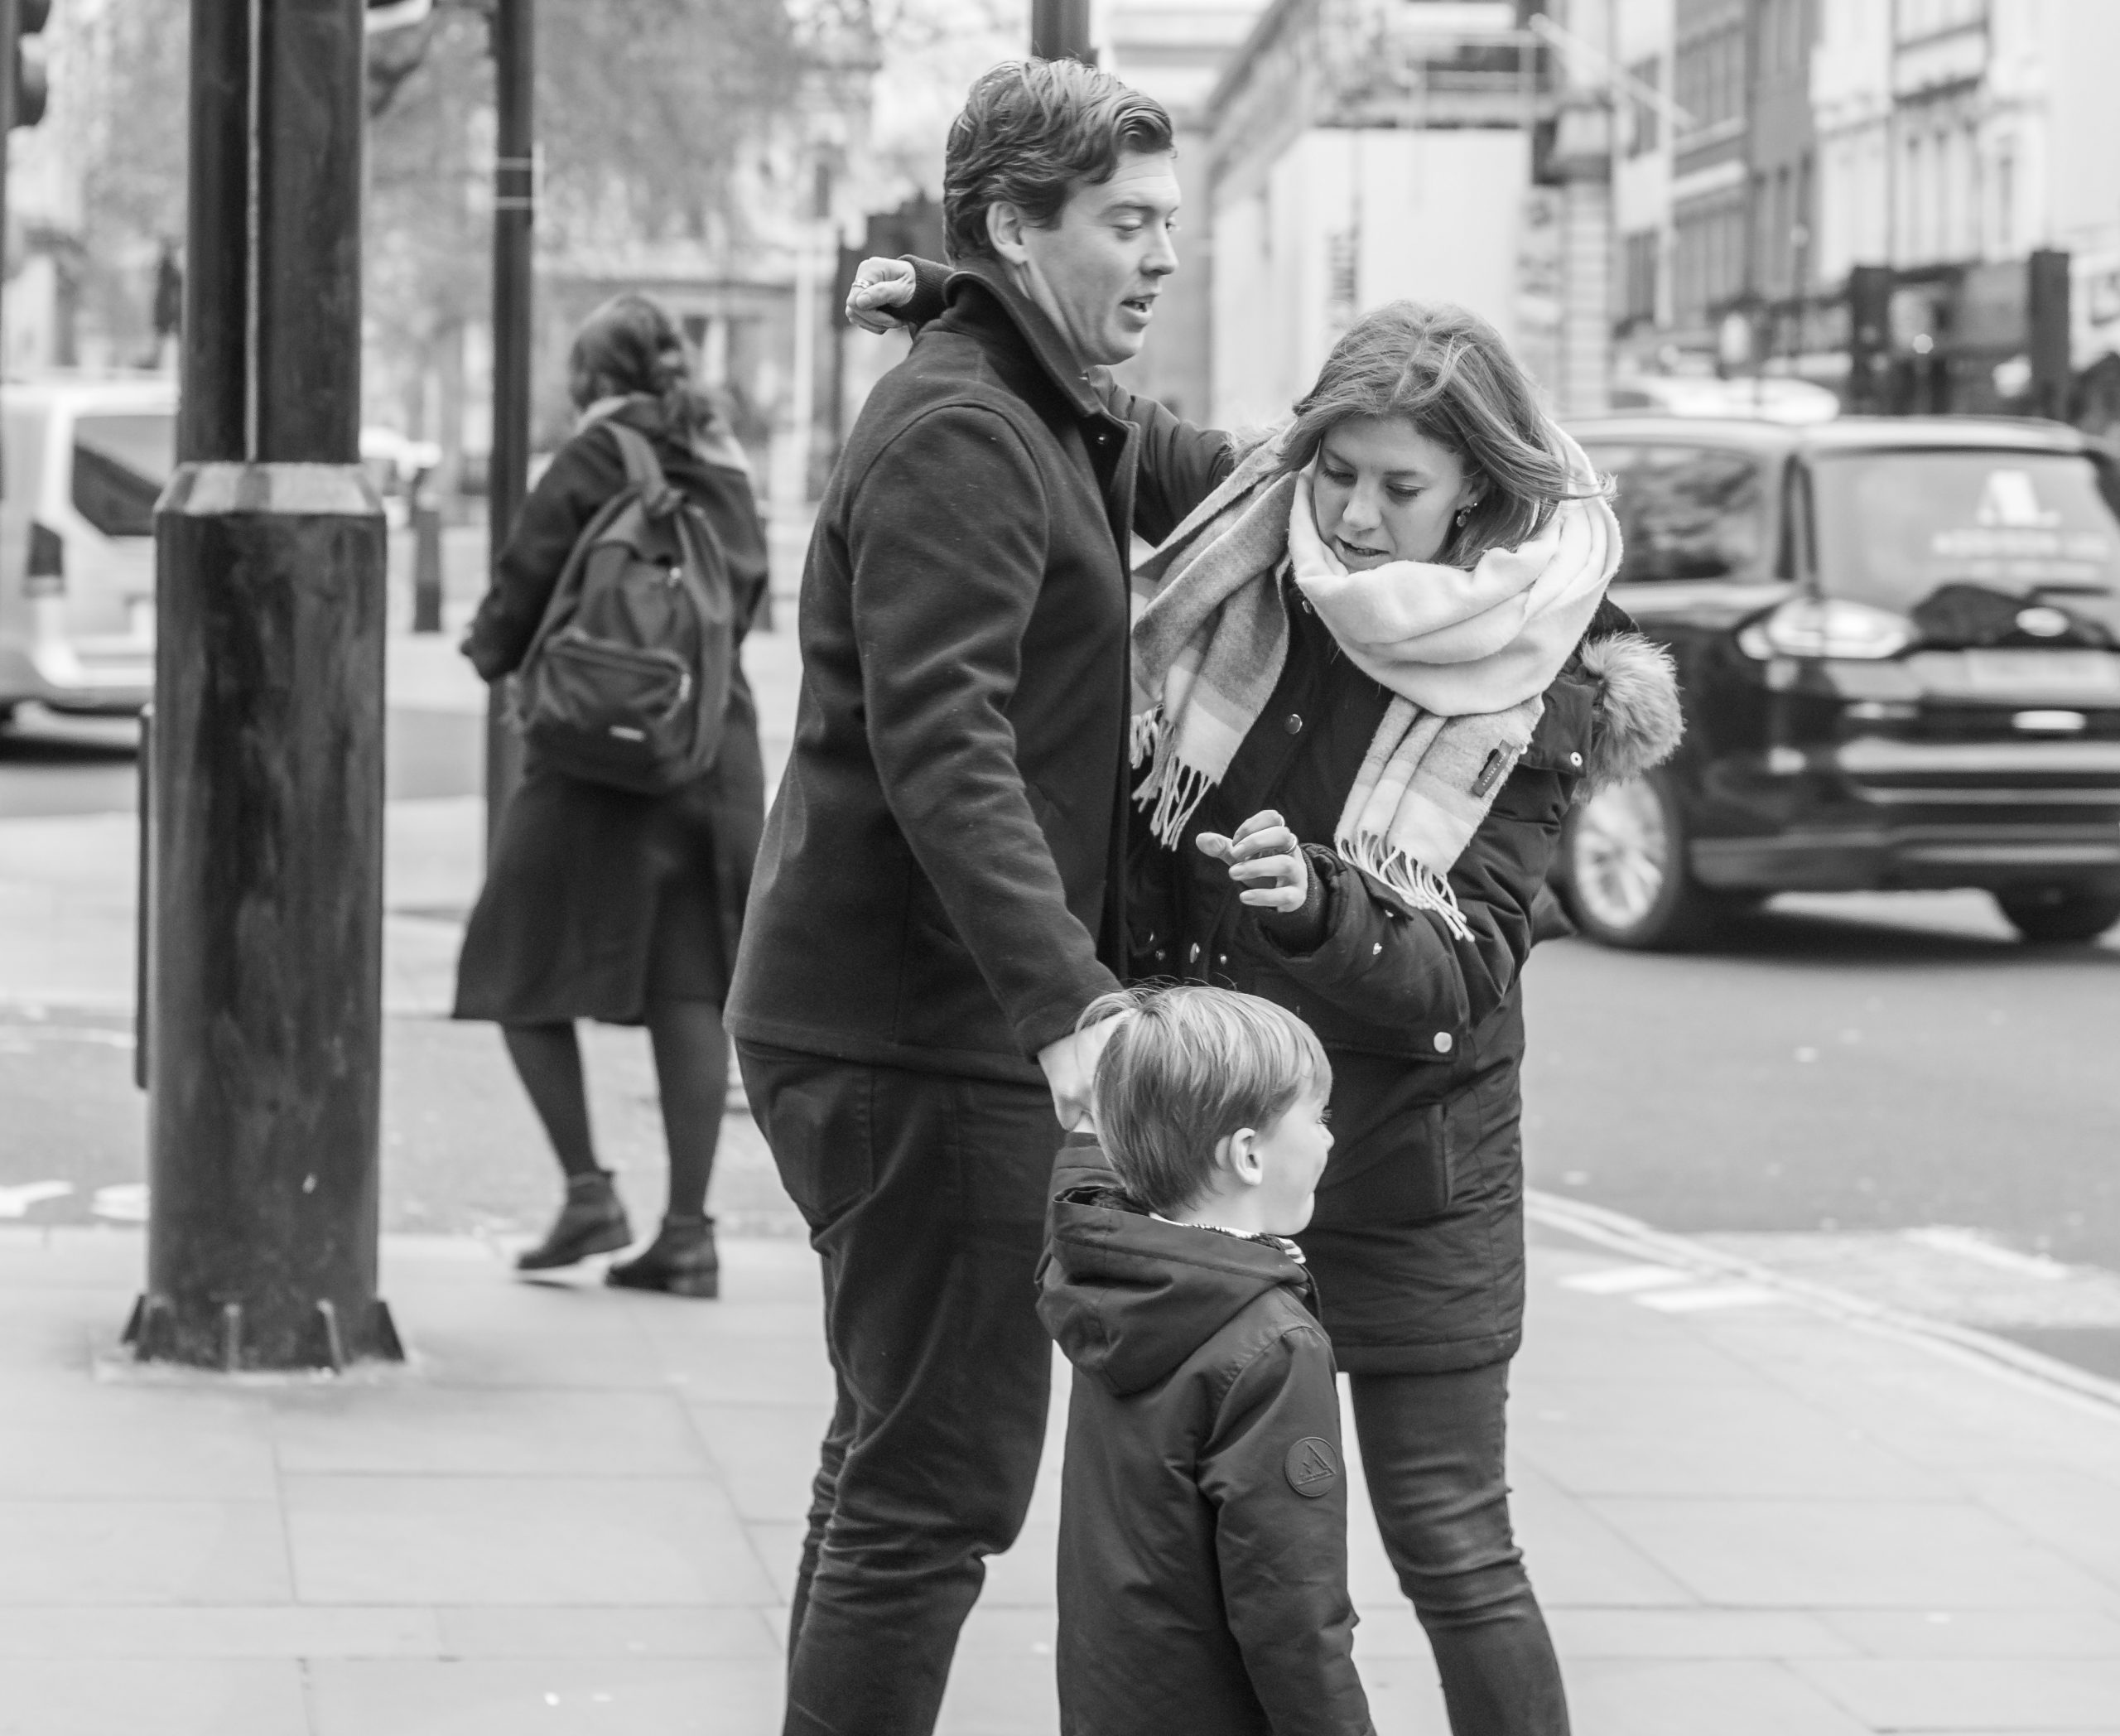 Street Photography couple and child